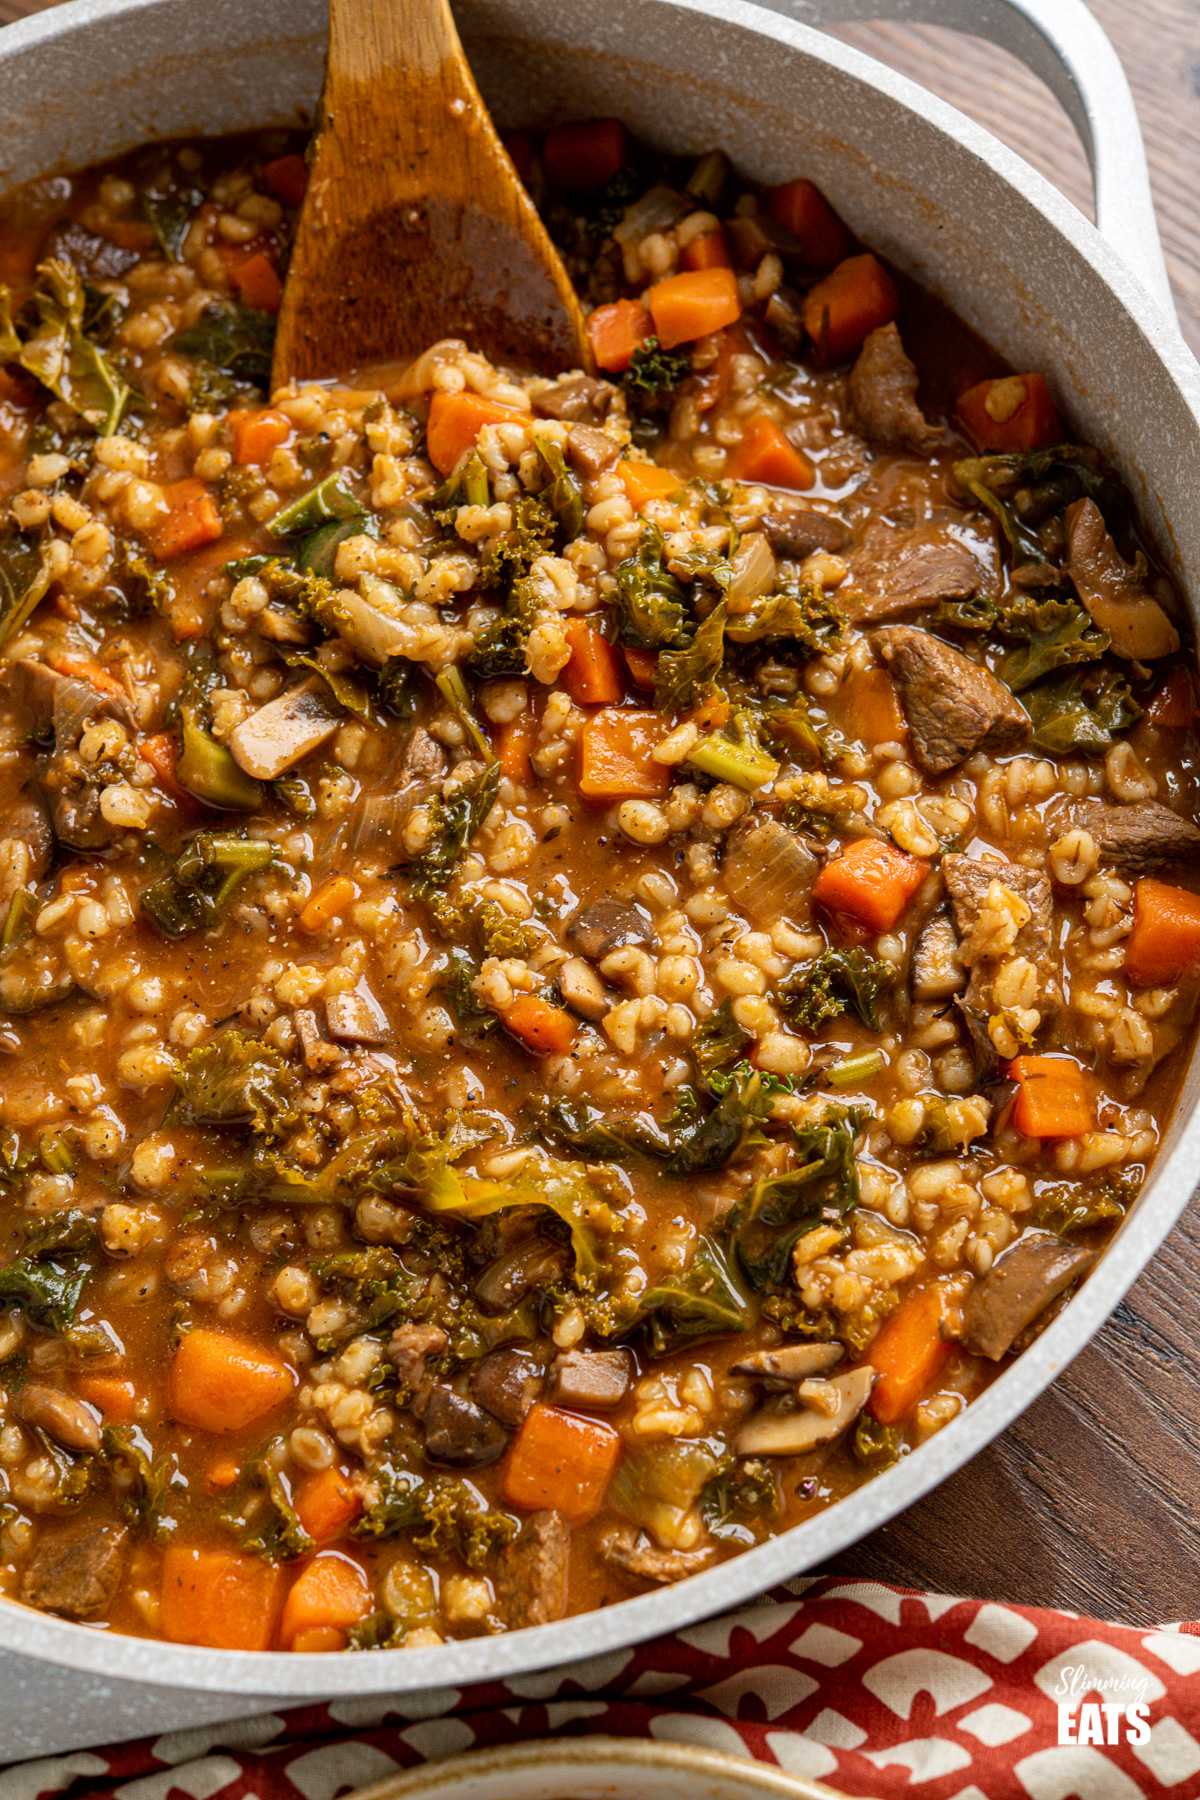 Beef and barley stew in casserole pot with wooden spoon